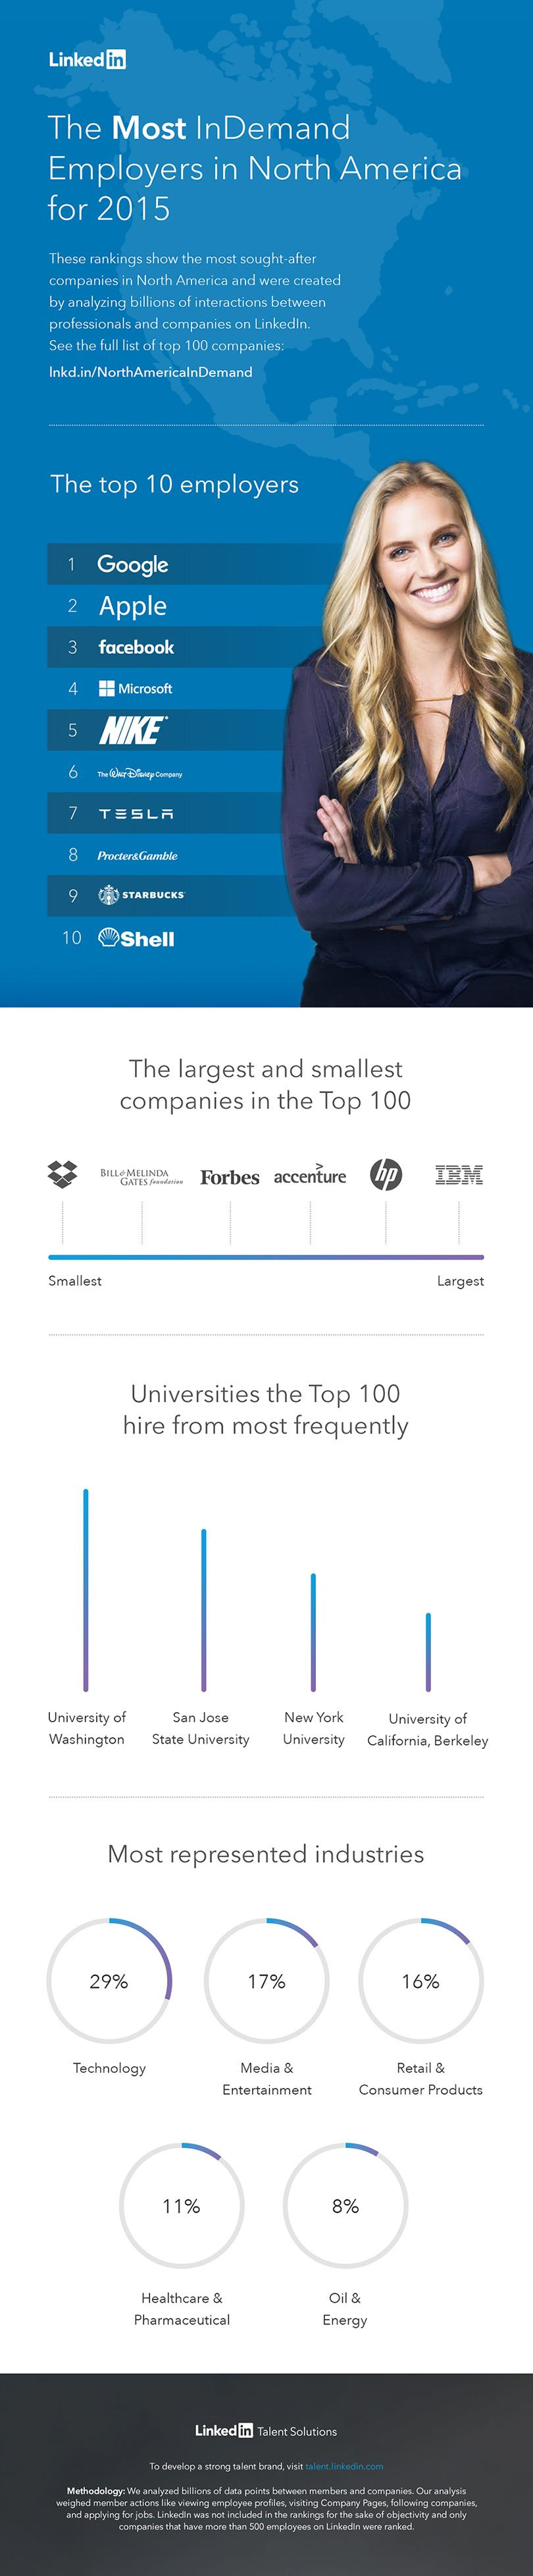 The top 10 most in-demand employers in America